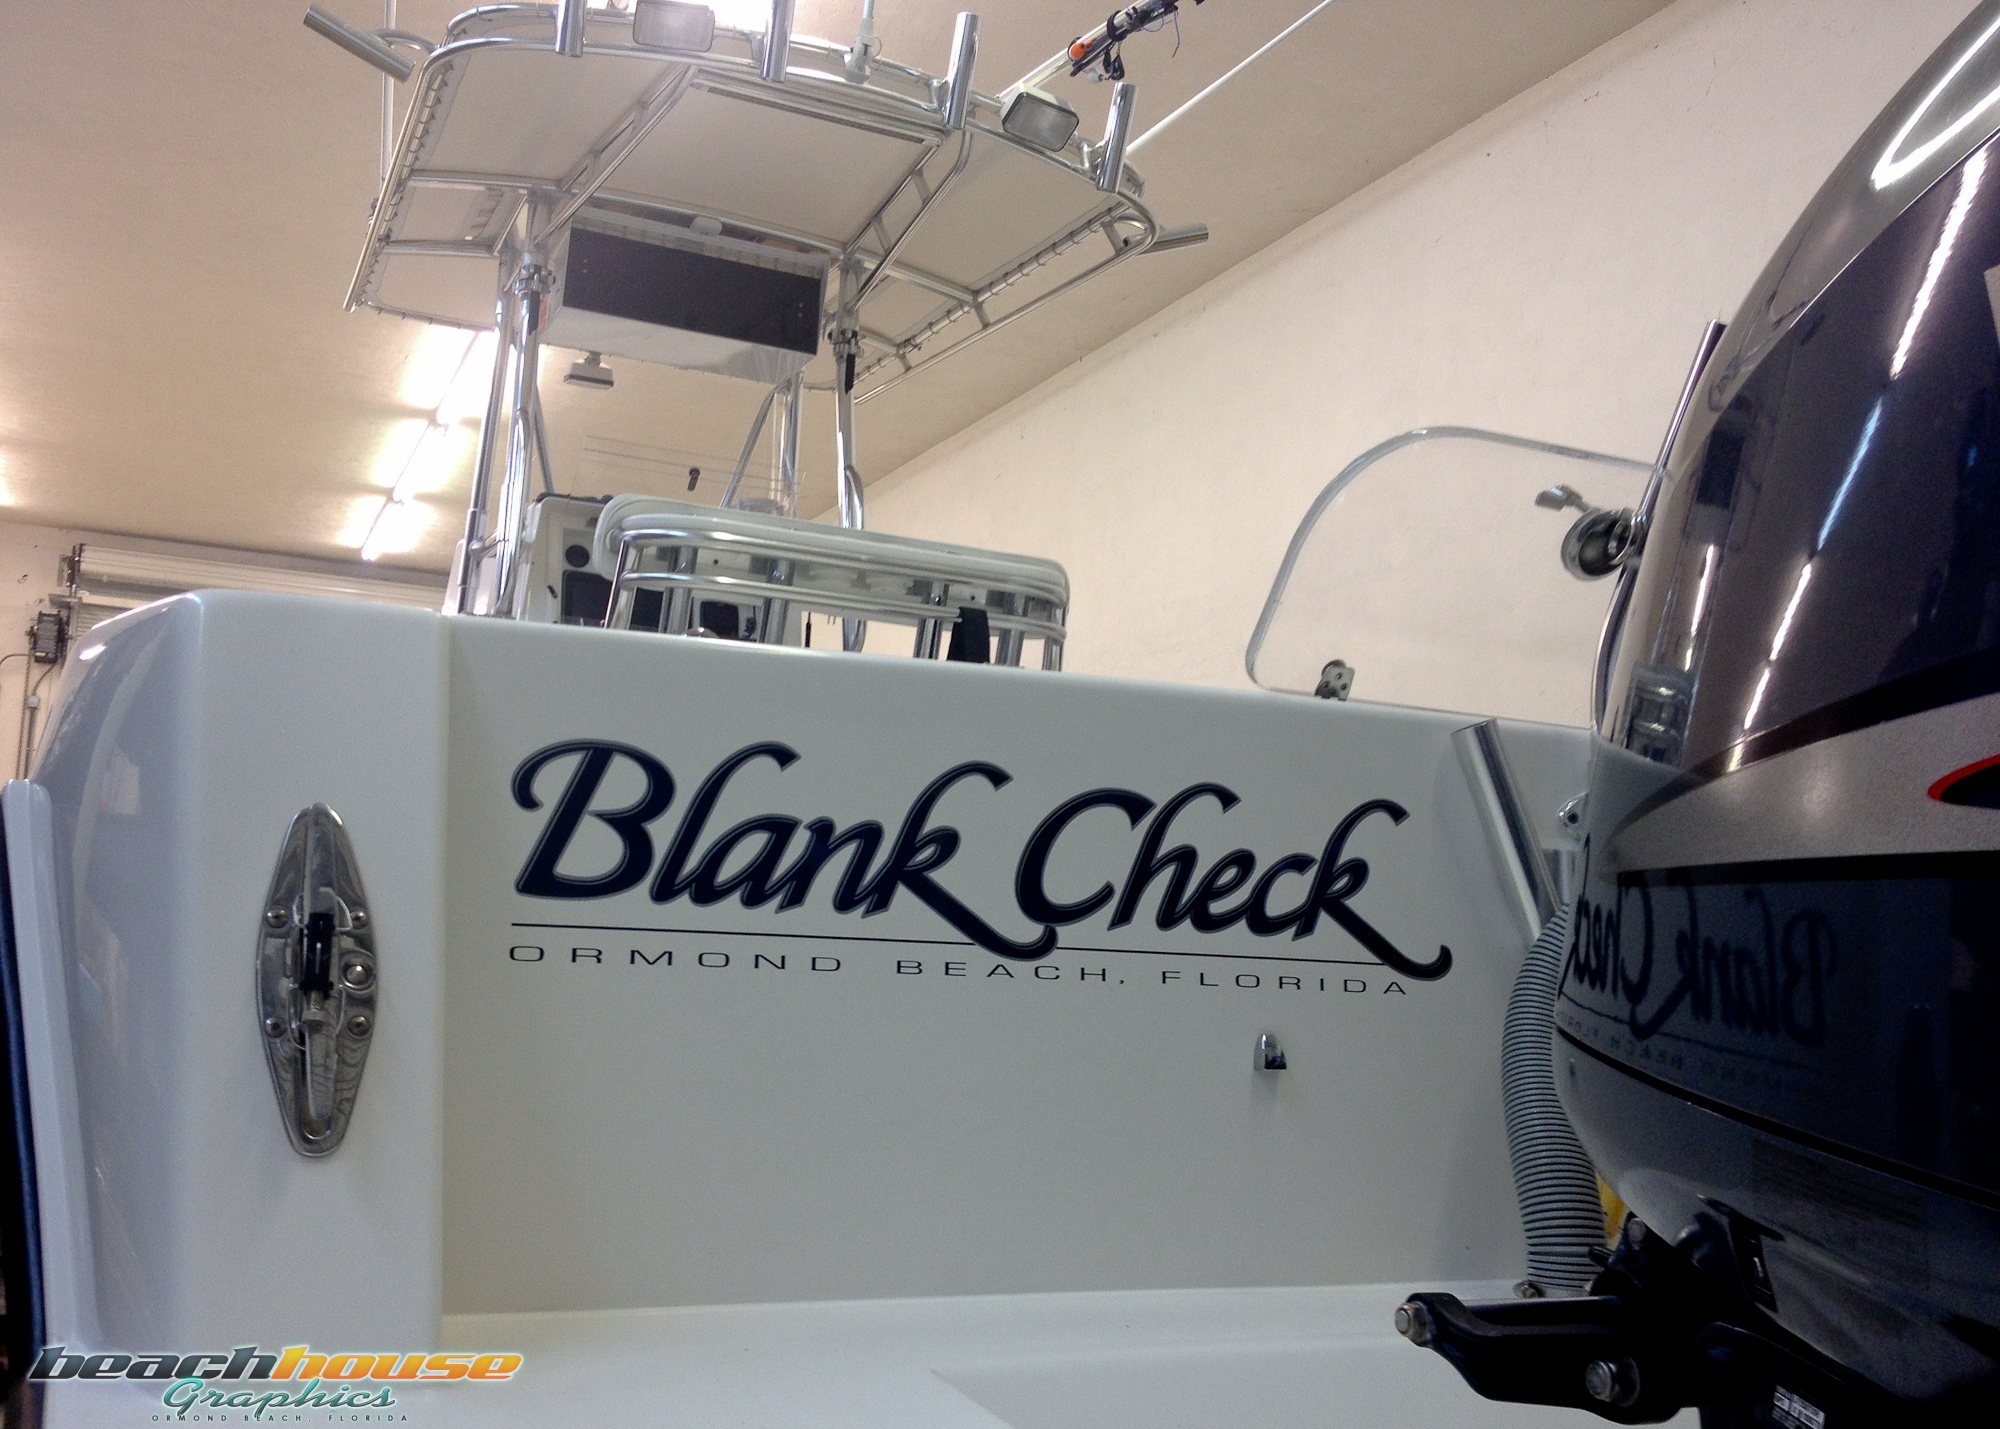 Vinyl-Lettering-Boat-Name-Graphics-Decals-Stickers-Black